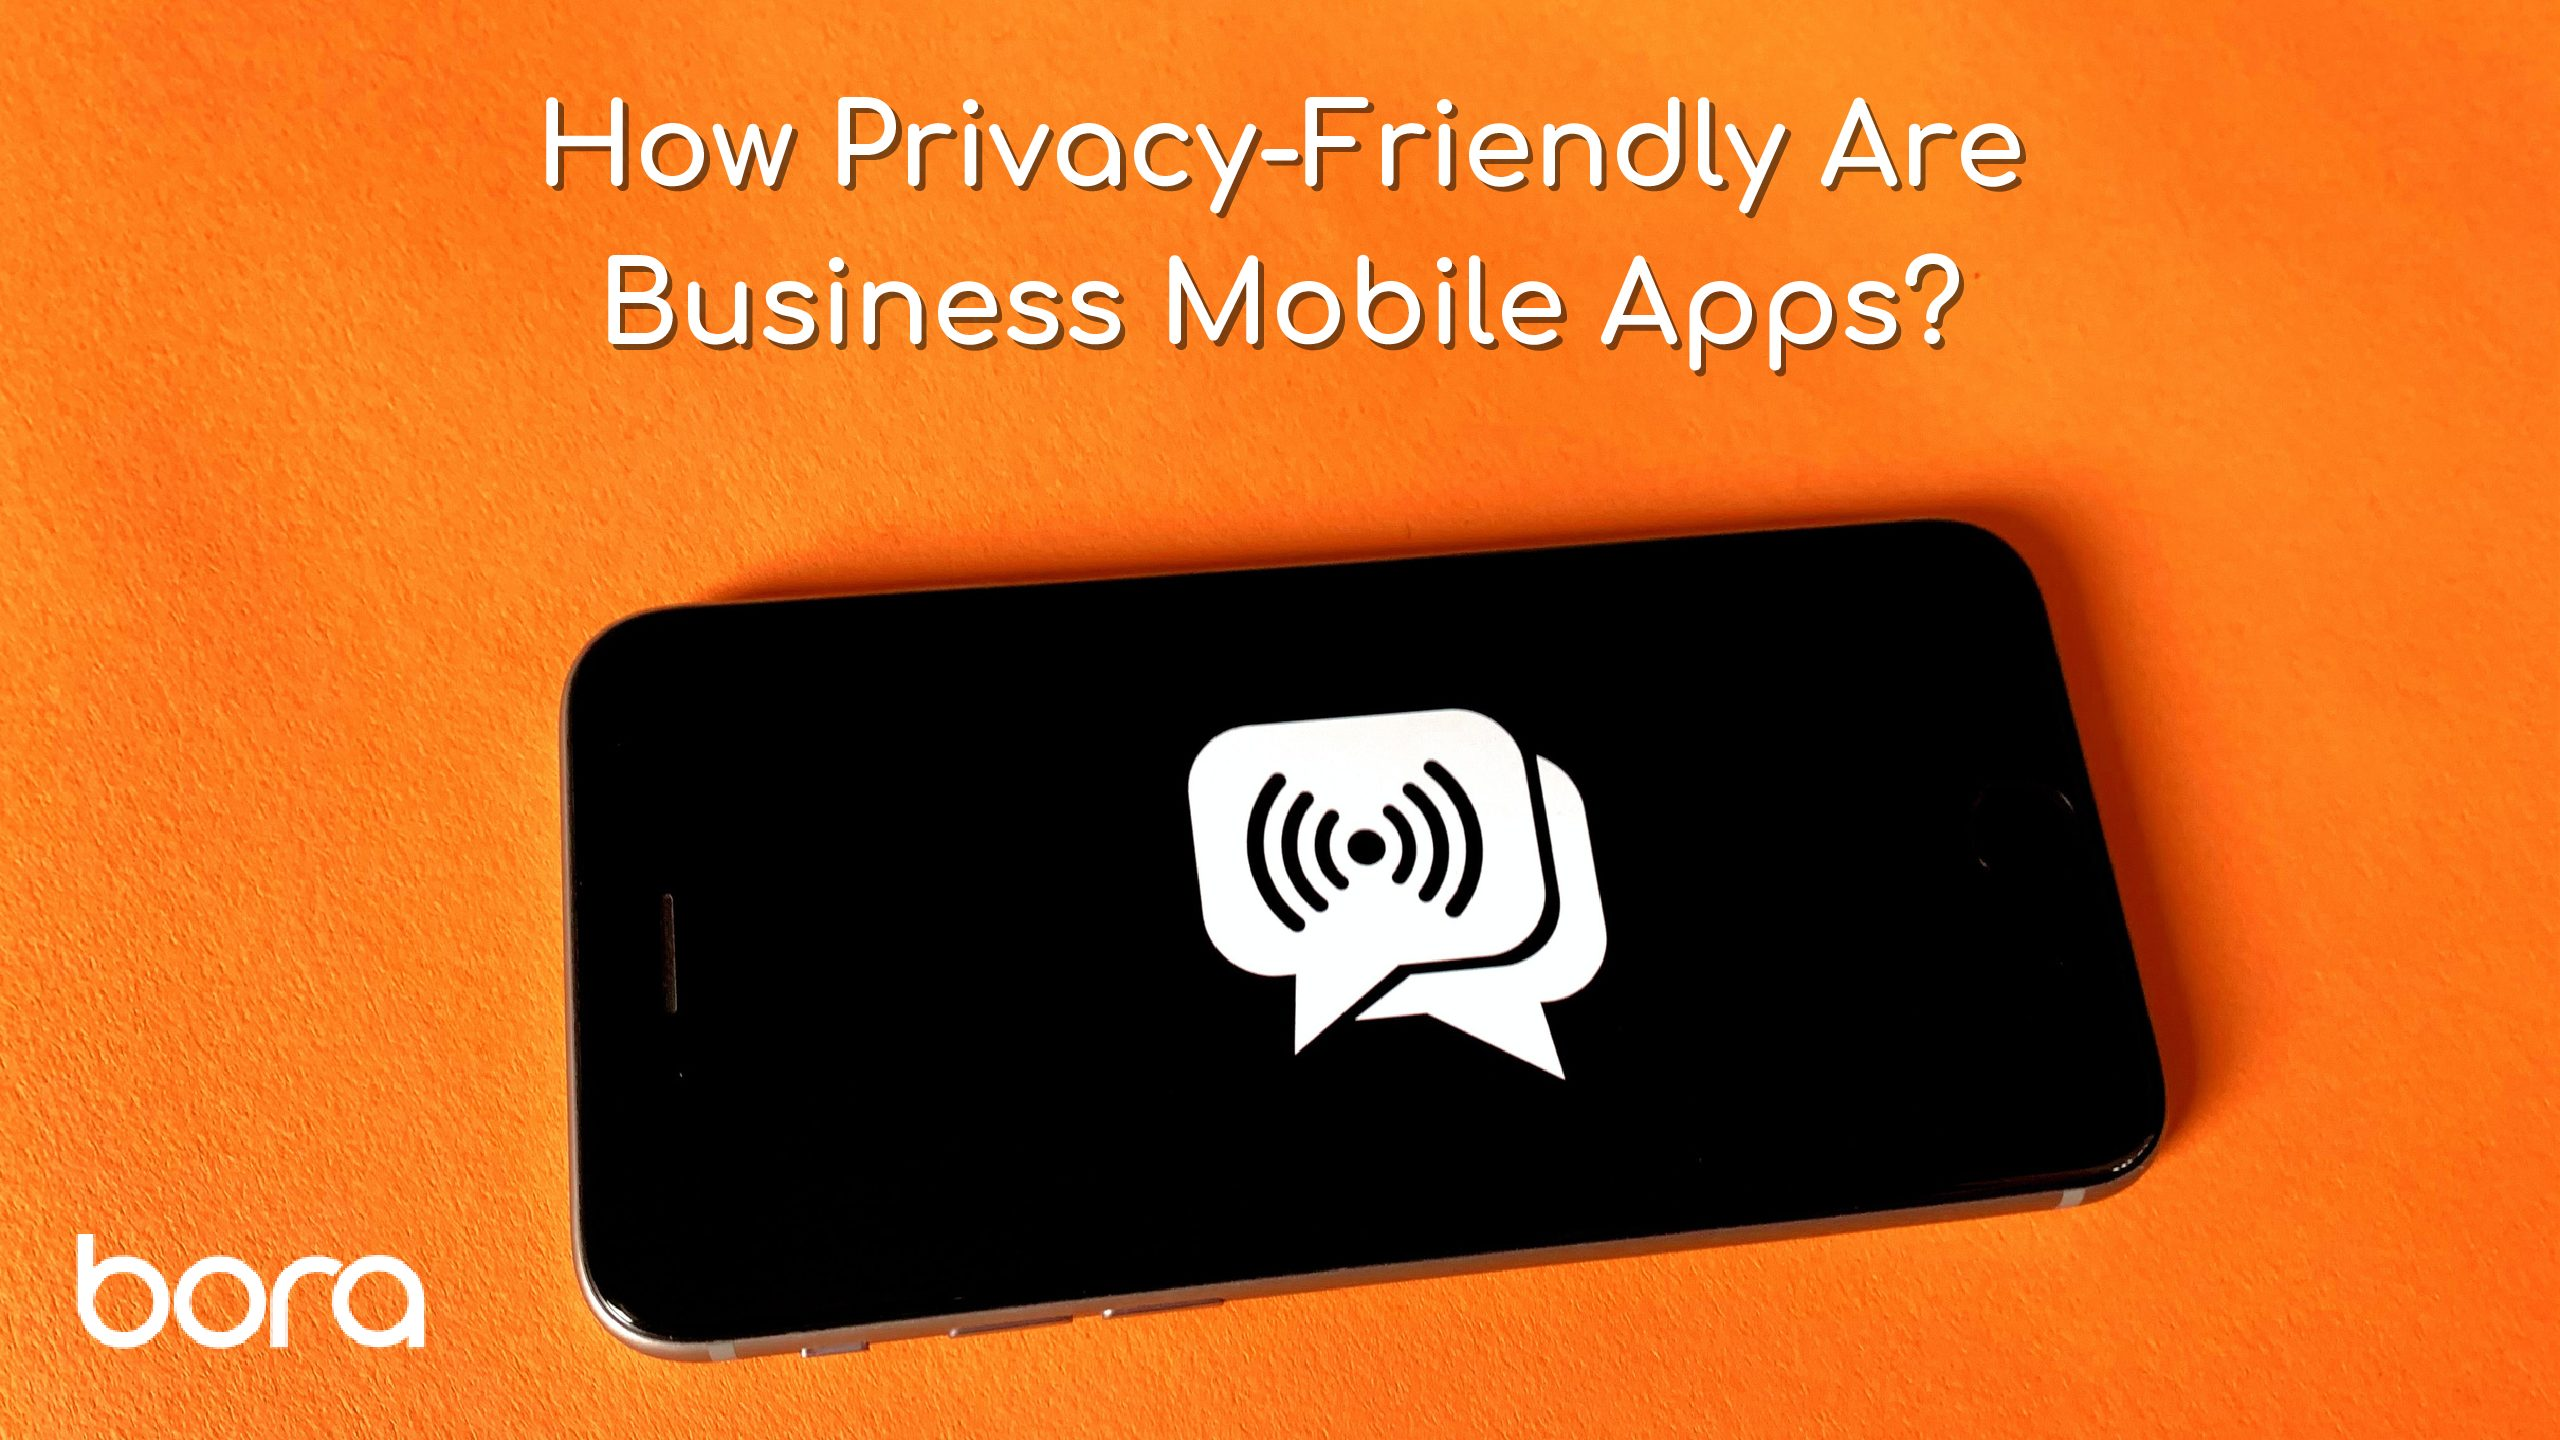 How Privacy-Friendly Are Business Mobile Apps?